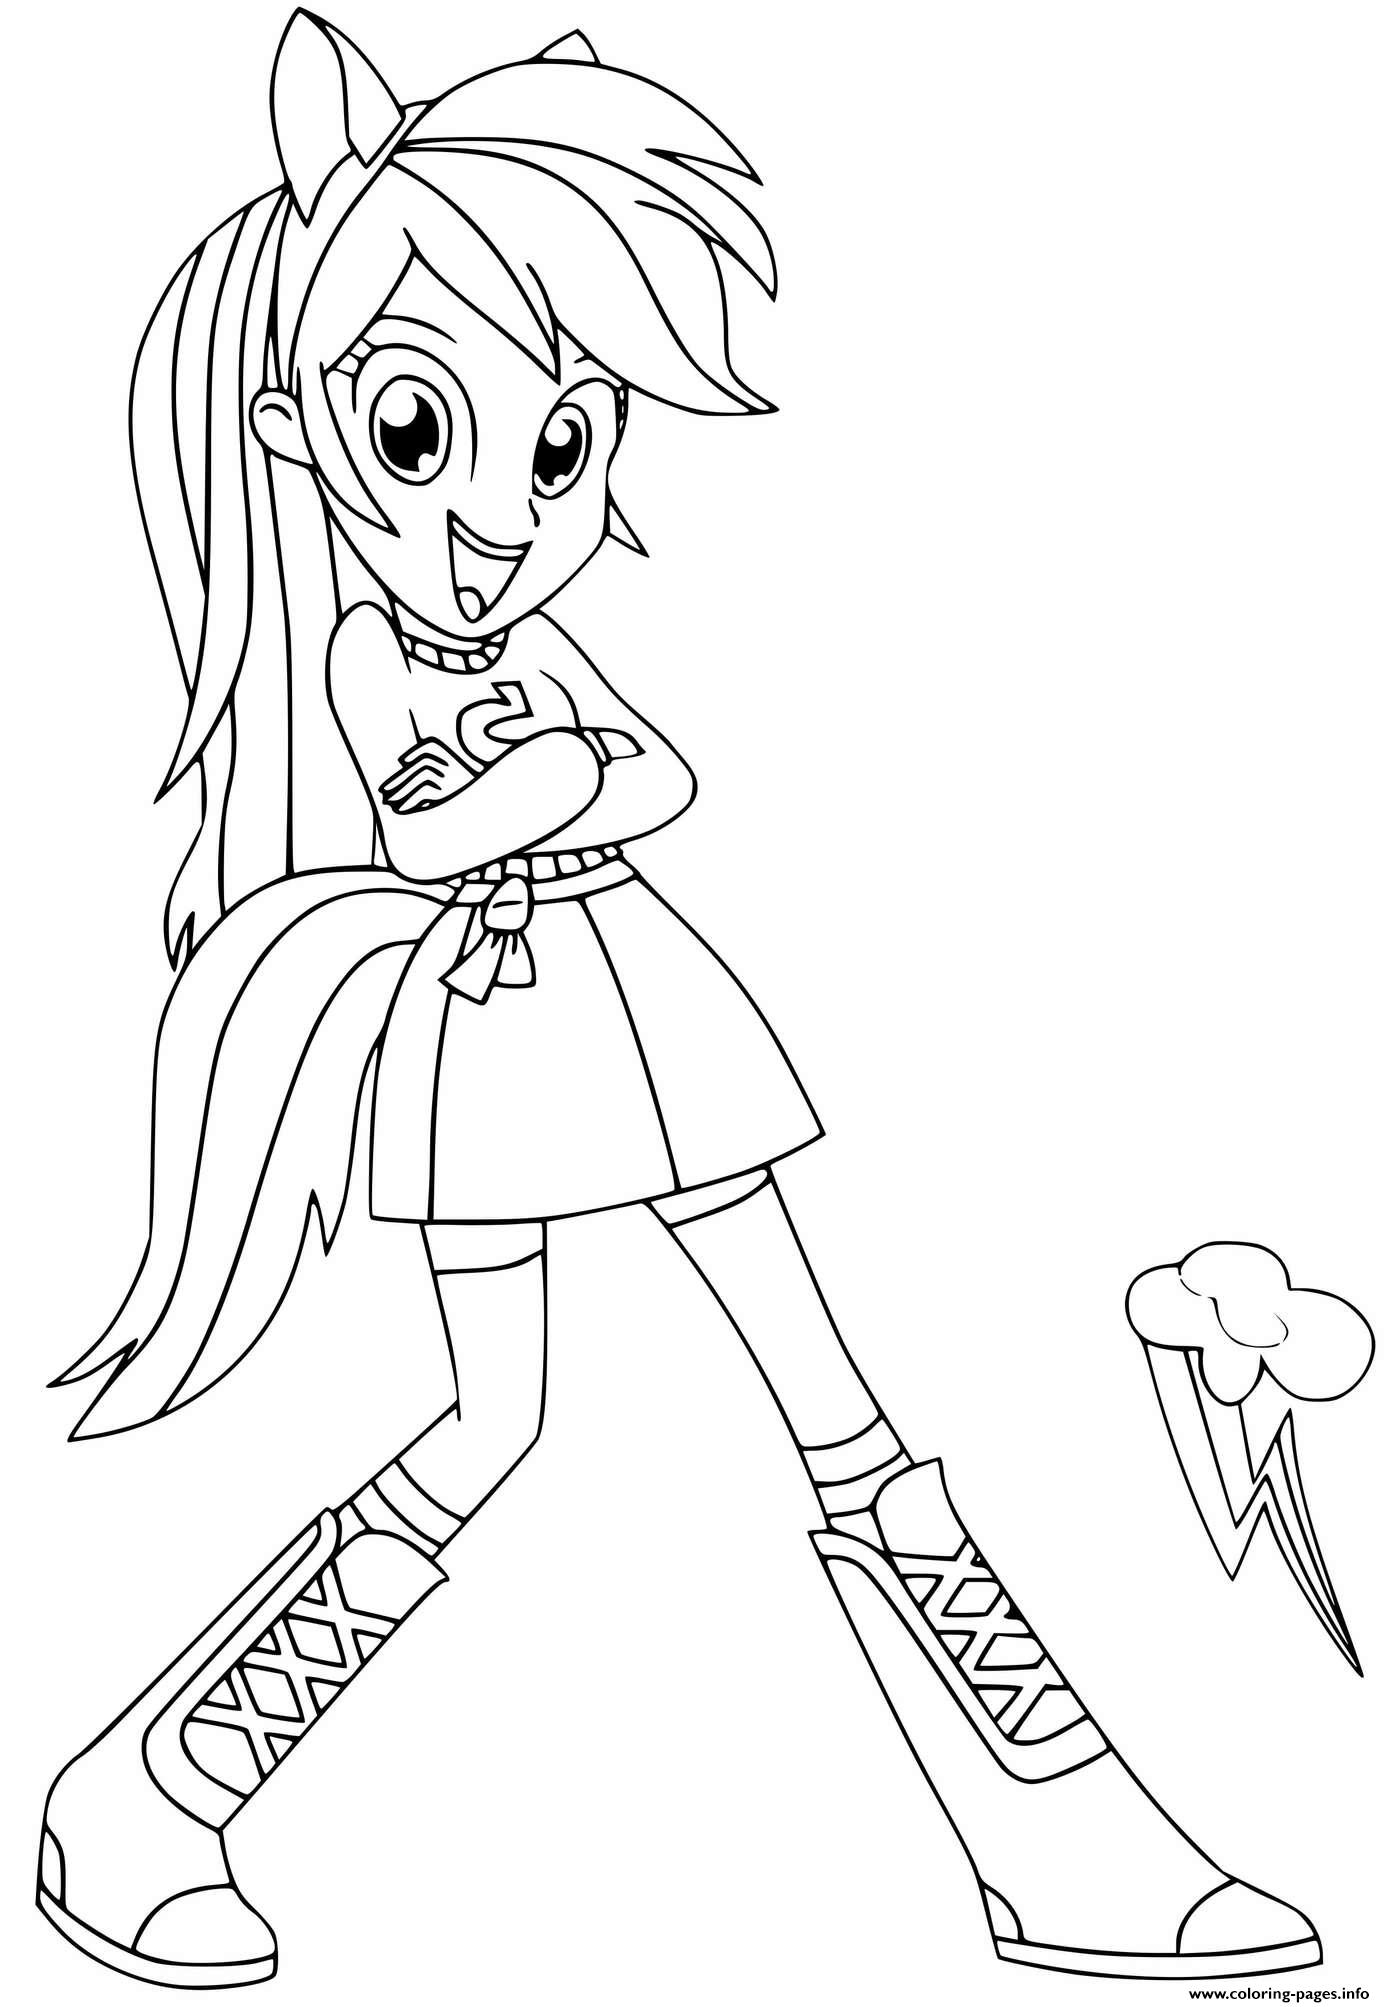 Rainbow Dash My Little Pony Equestria Girls Coloring Pages Printable